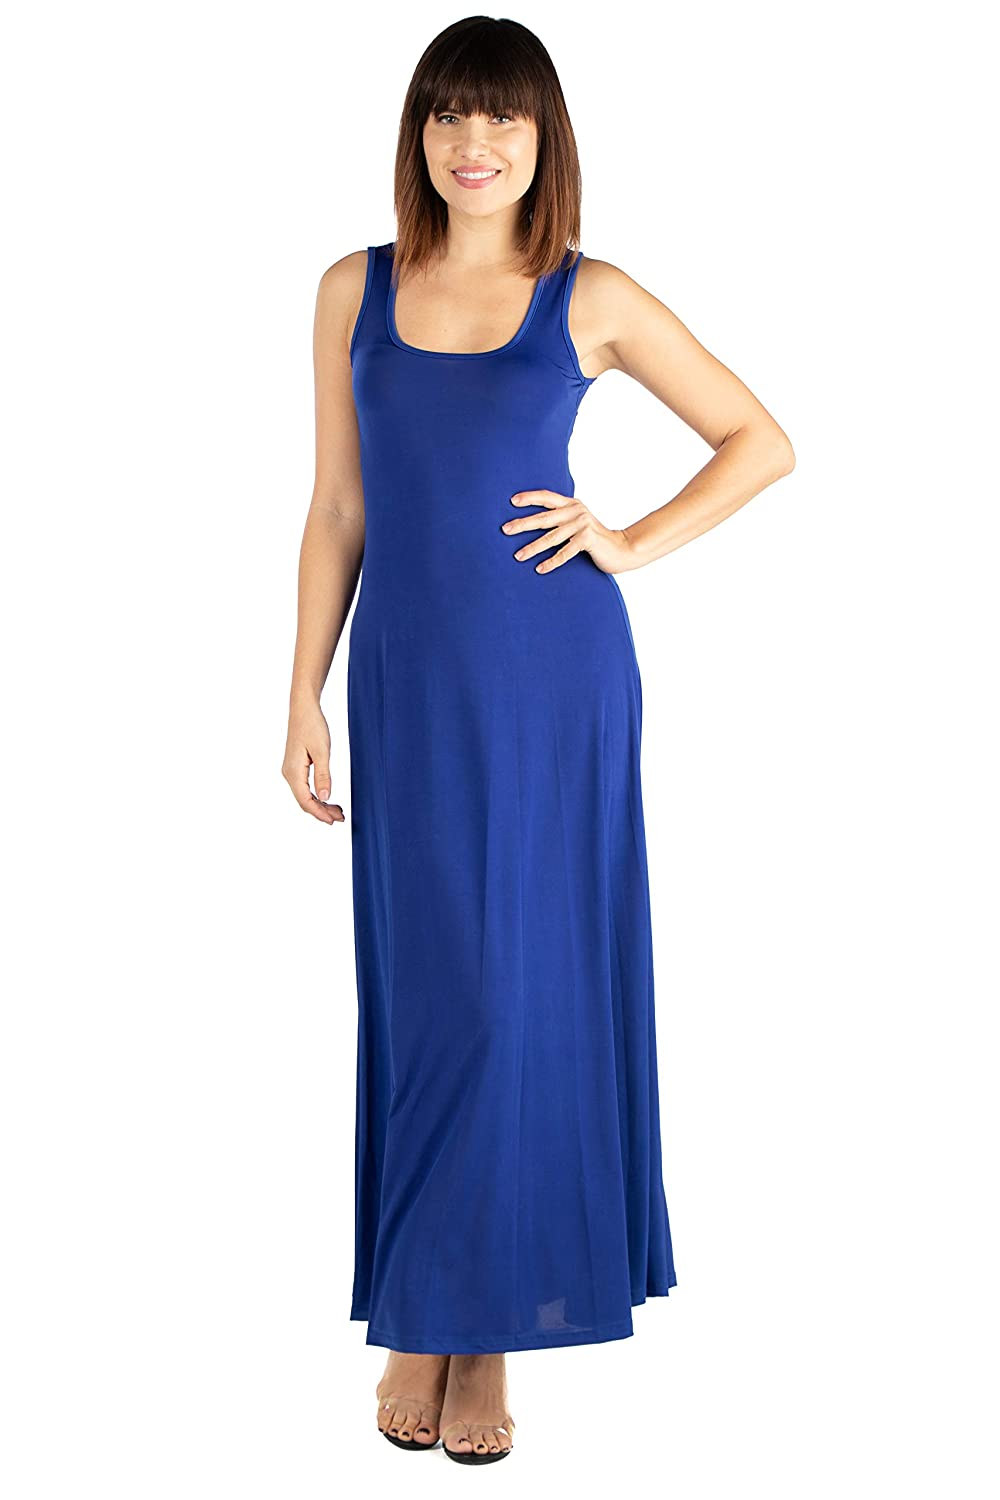 Made in USA Sizes S-1XL 24seven Comfort Apparel Simple A Line Racerback Tank Maxi Dress